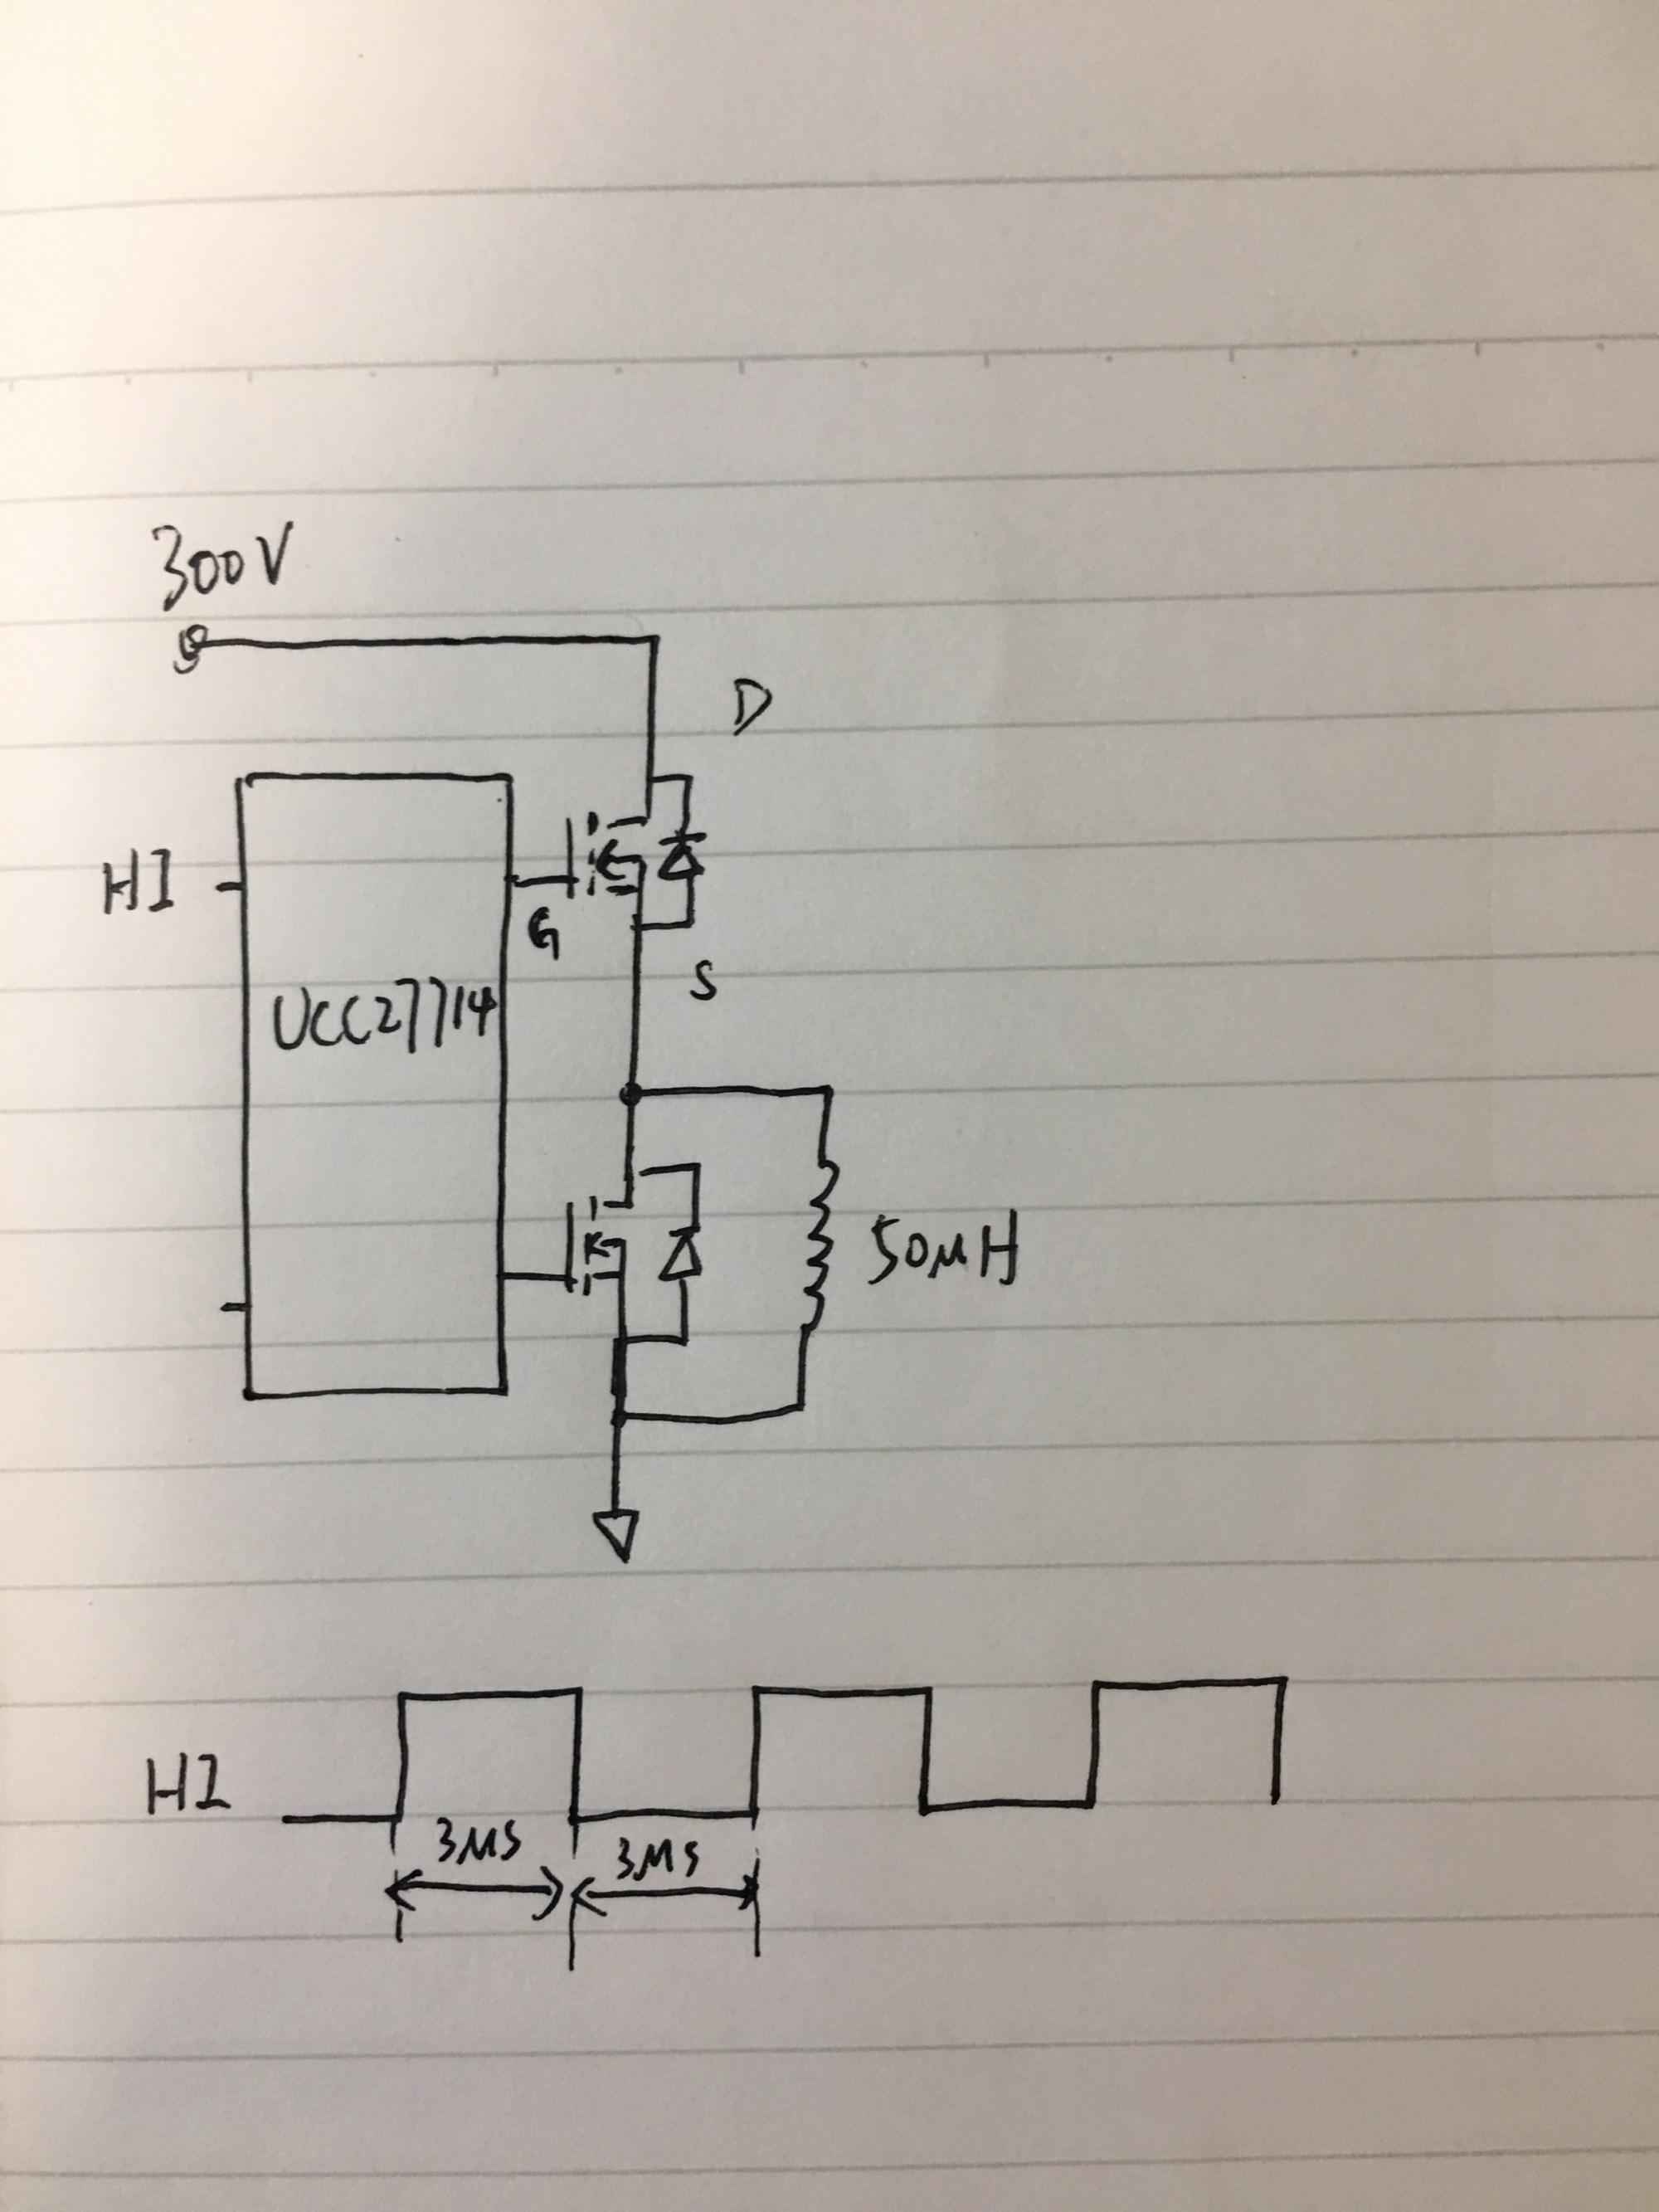 hight resolution of ok the mosfet tested ok below is the schematic diagram schema ok the mosfet tested ok below is the schematic diagram